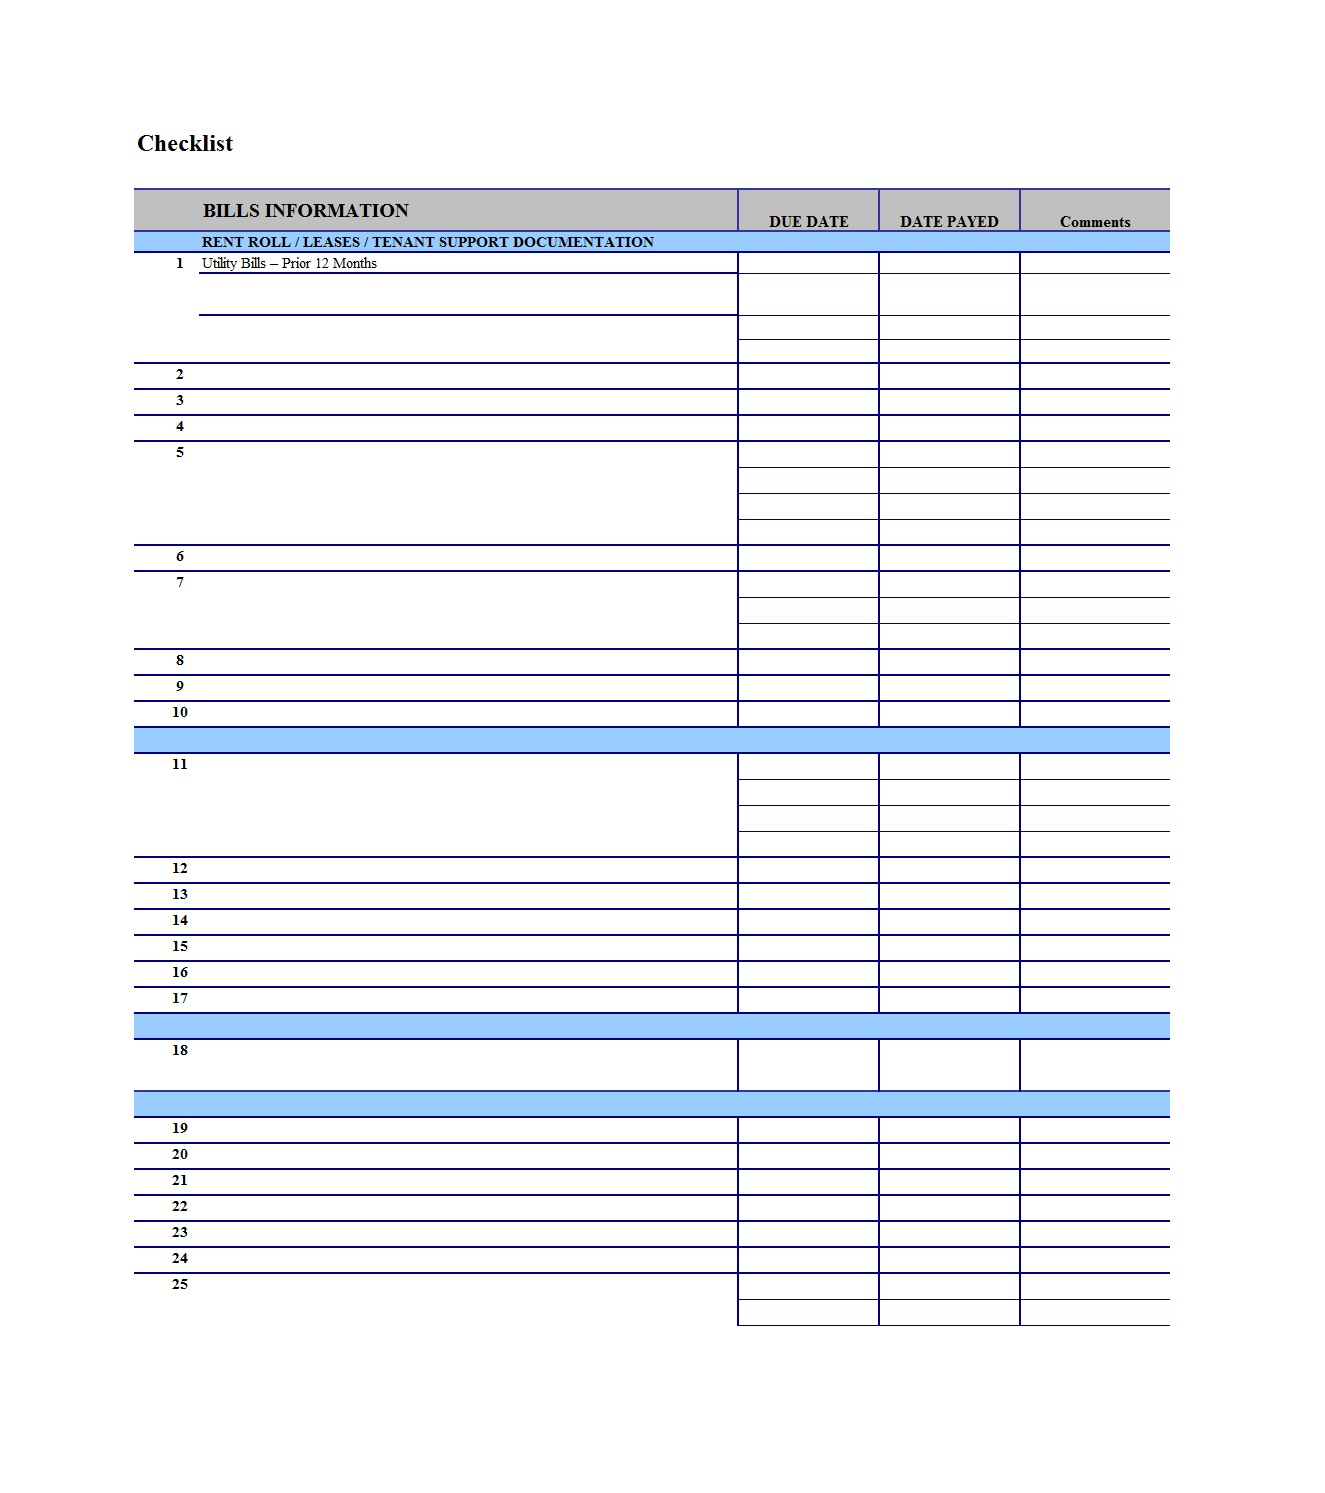 32 Free Bill Pay Checklists & Bill Calendars (Pdf, Word & Excel)